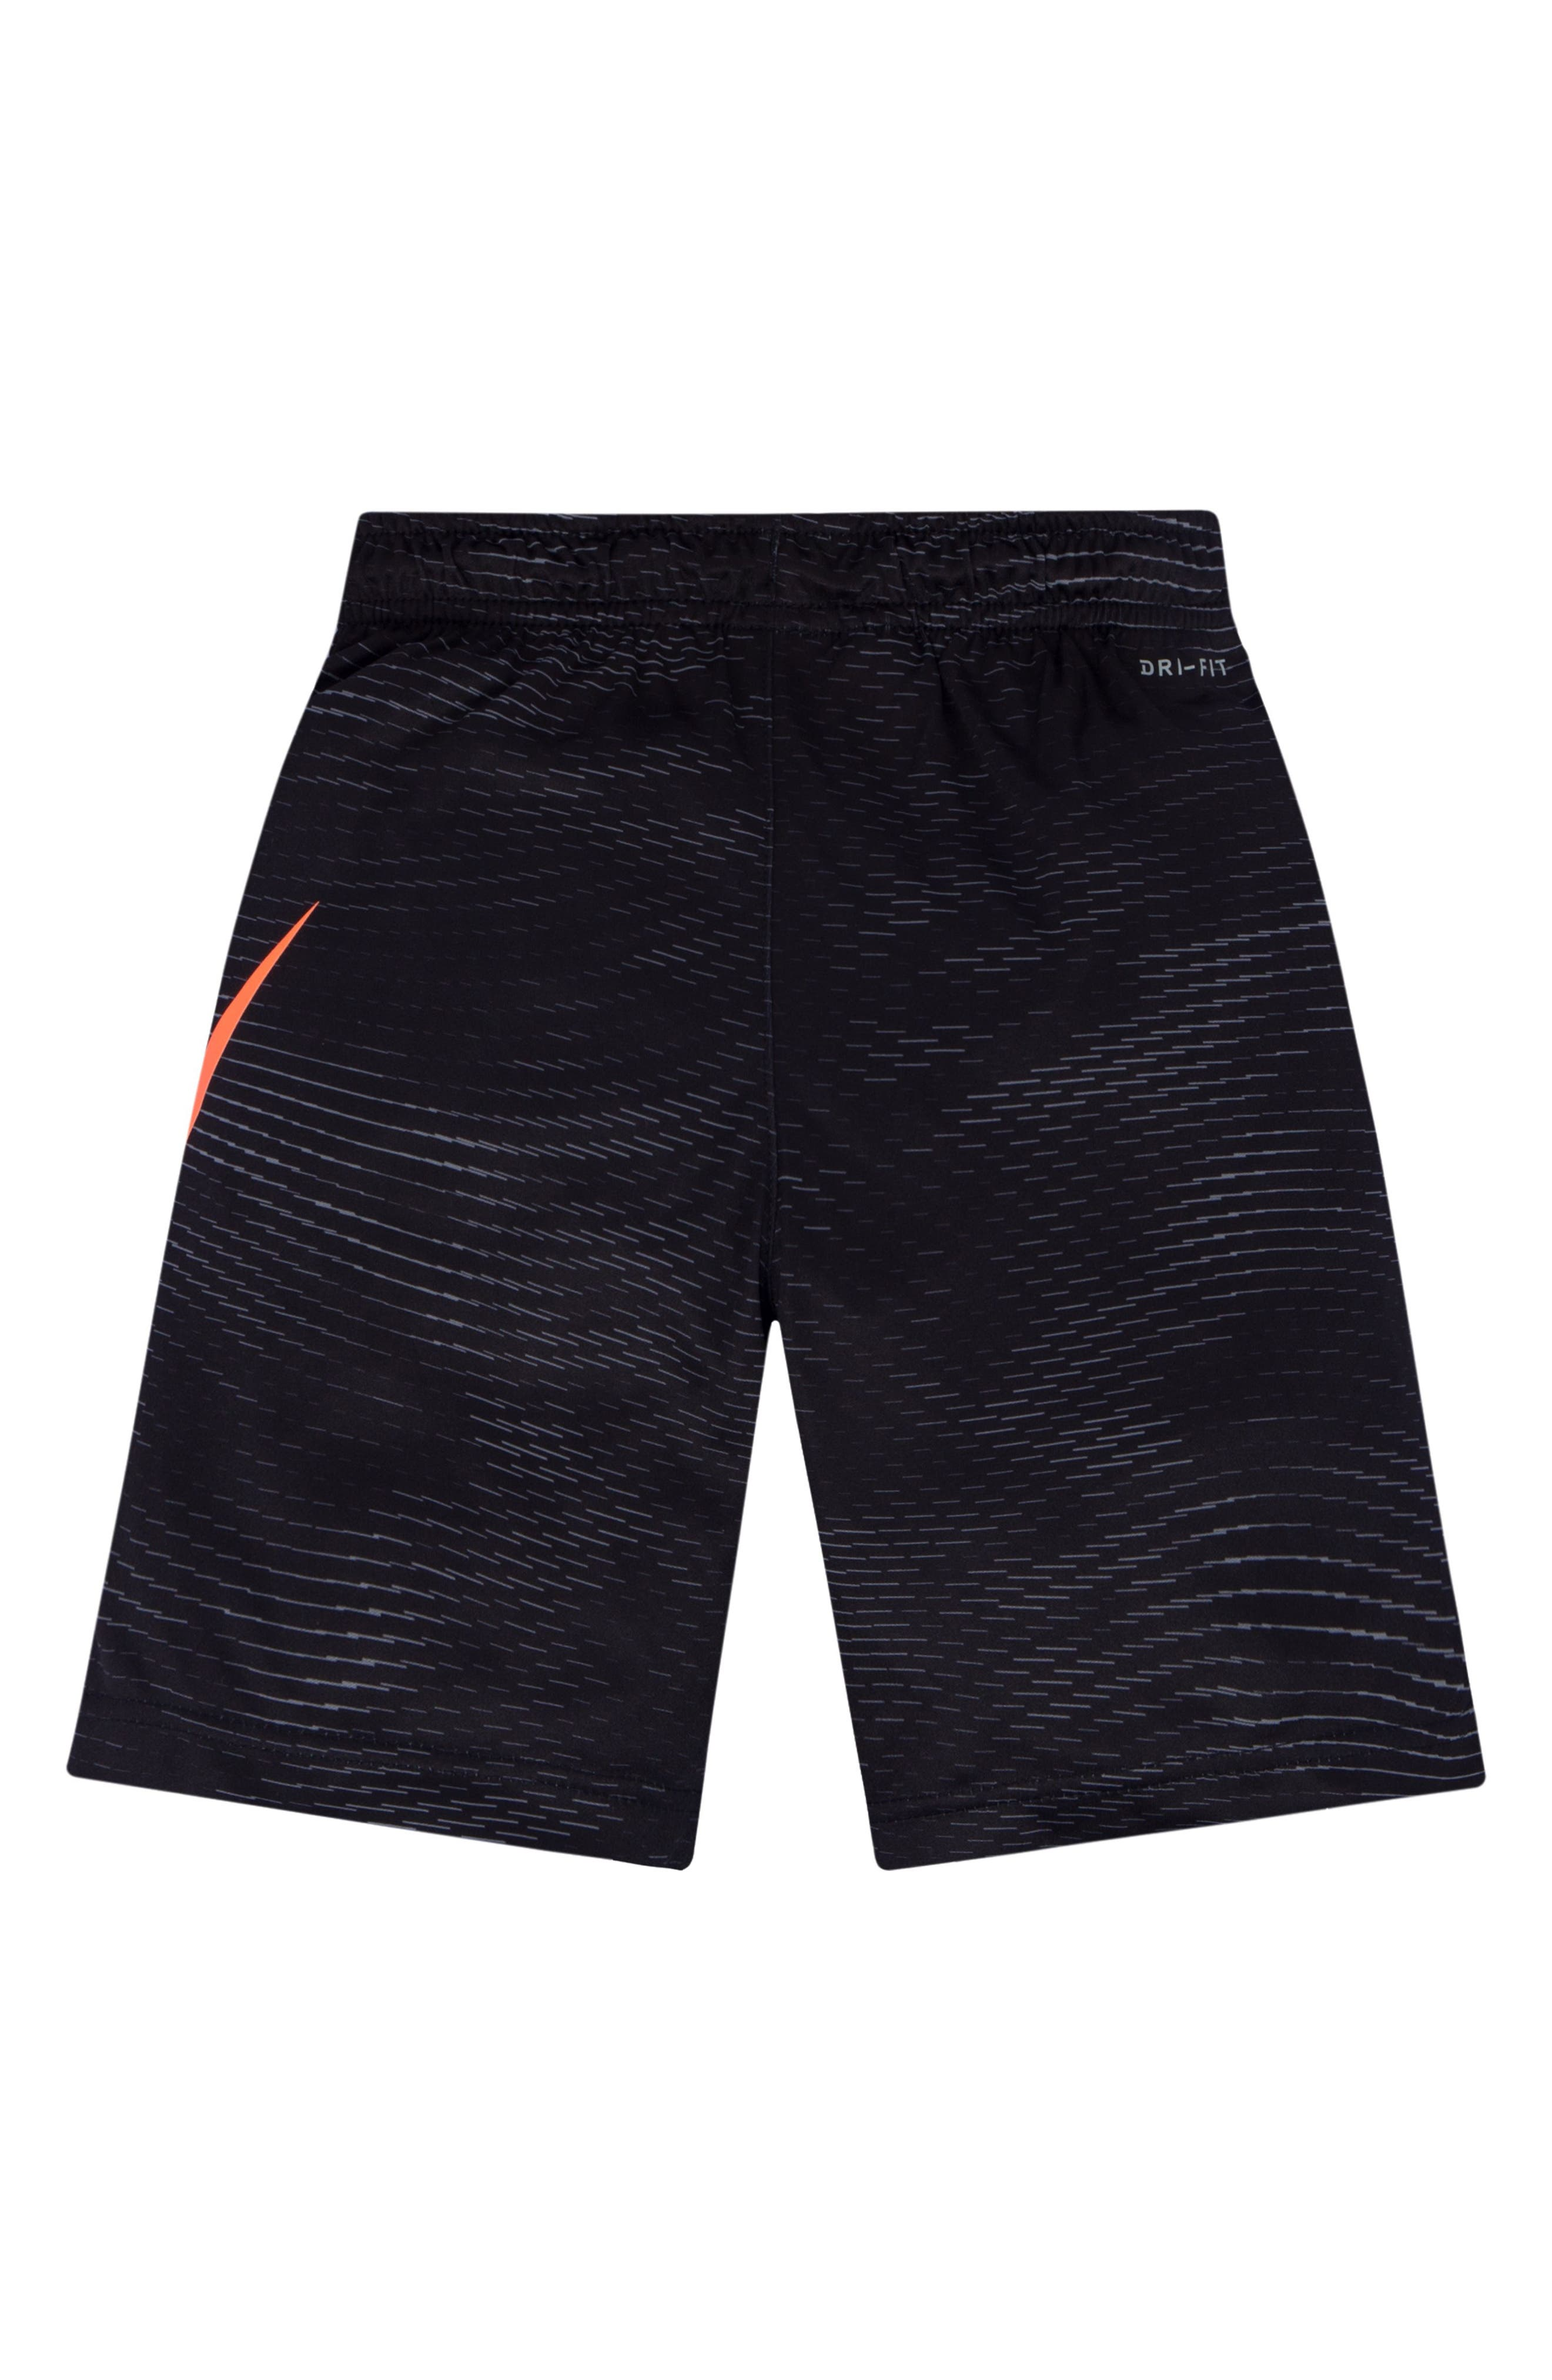 Dry Athletic Shorts,                             Alternate thumbnail 5, color,